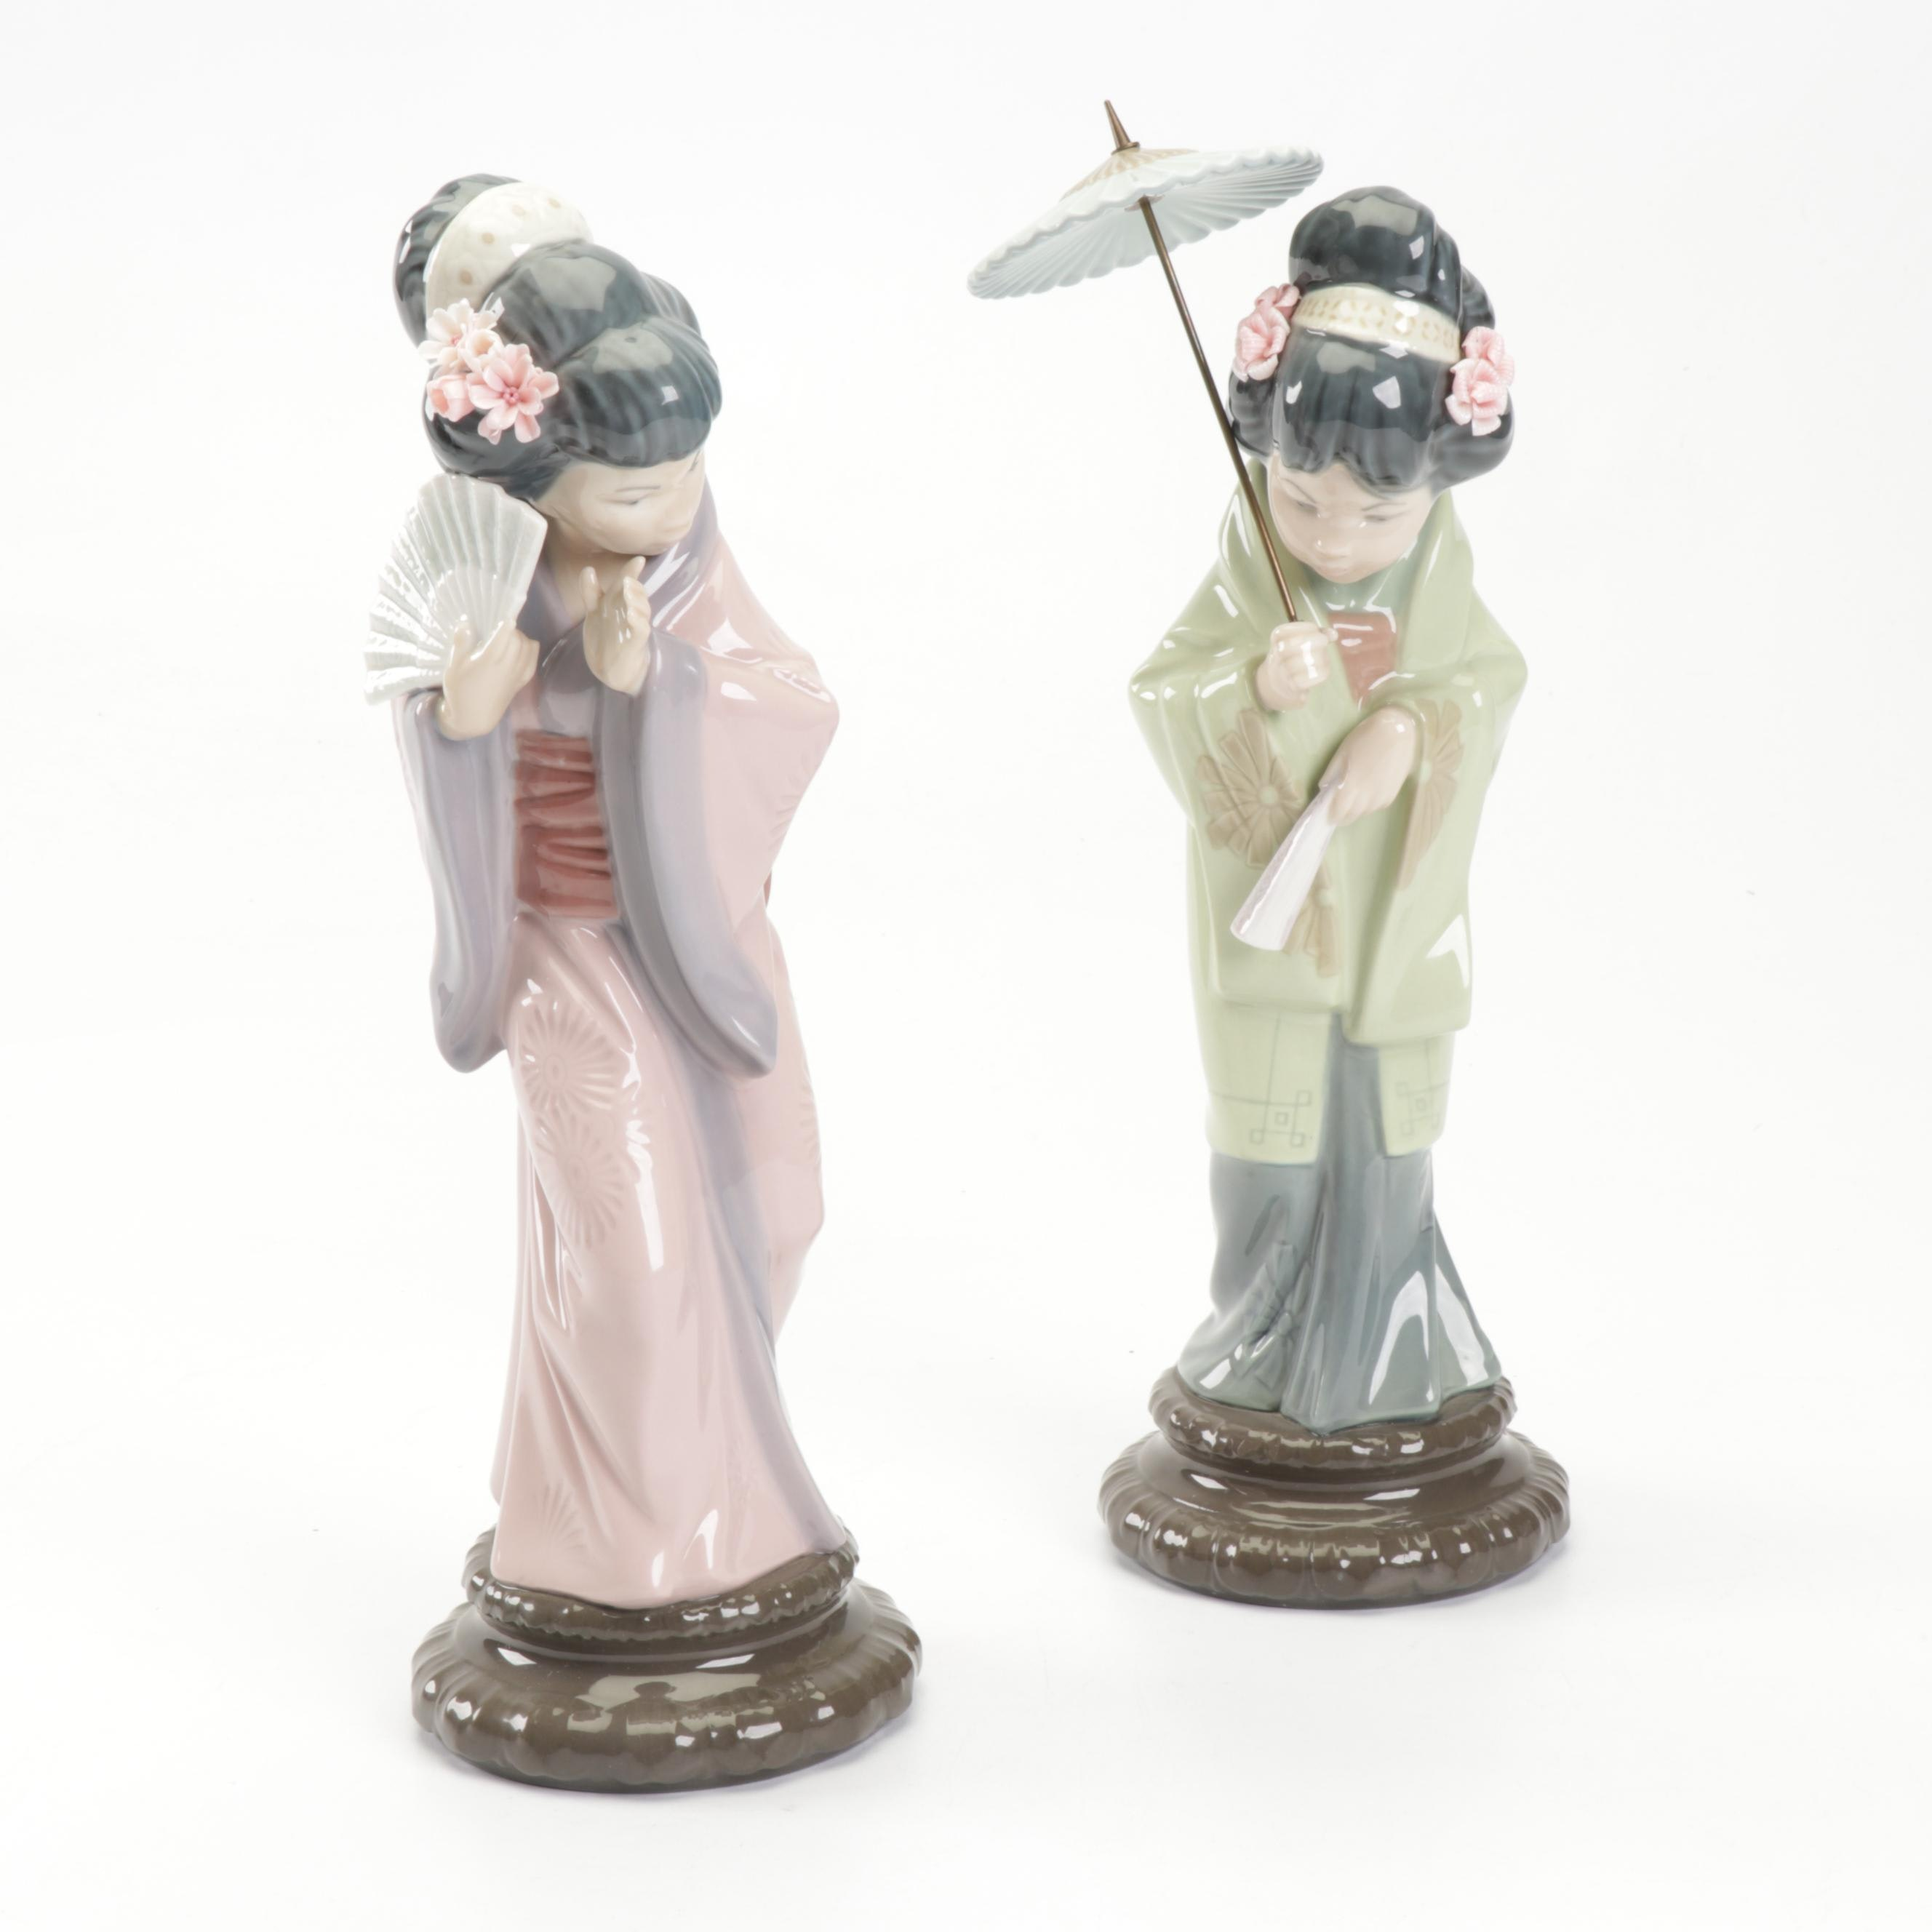 Lladró Porcelain Woman Holding Umbrella and Fan Figurines